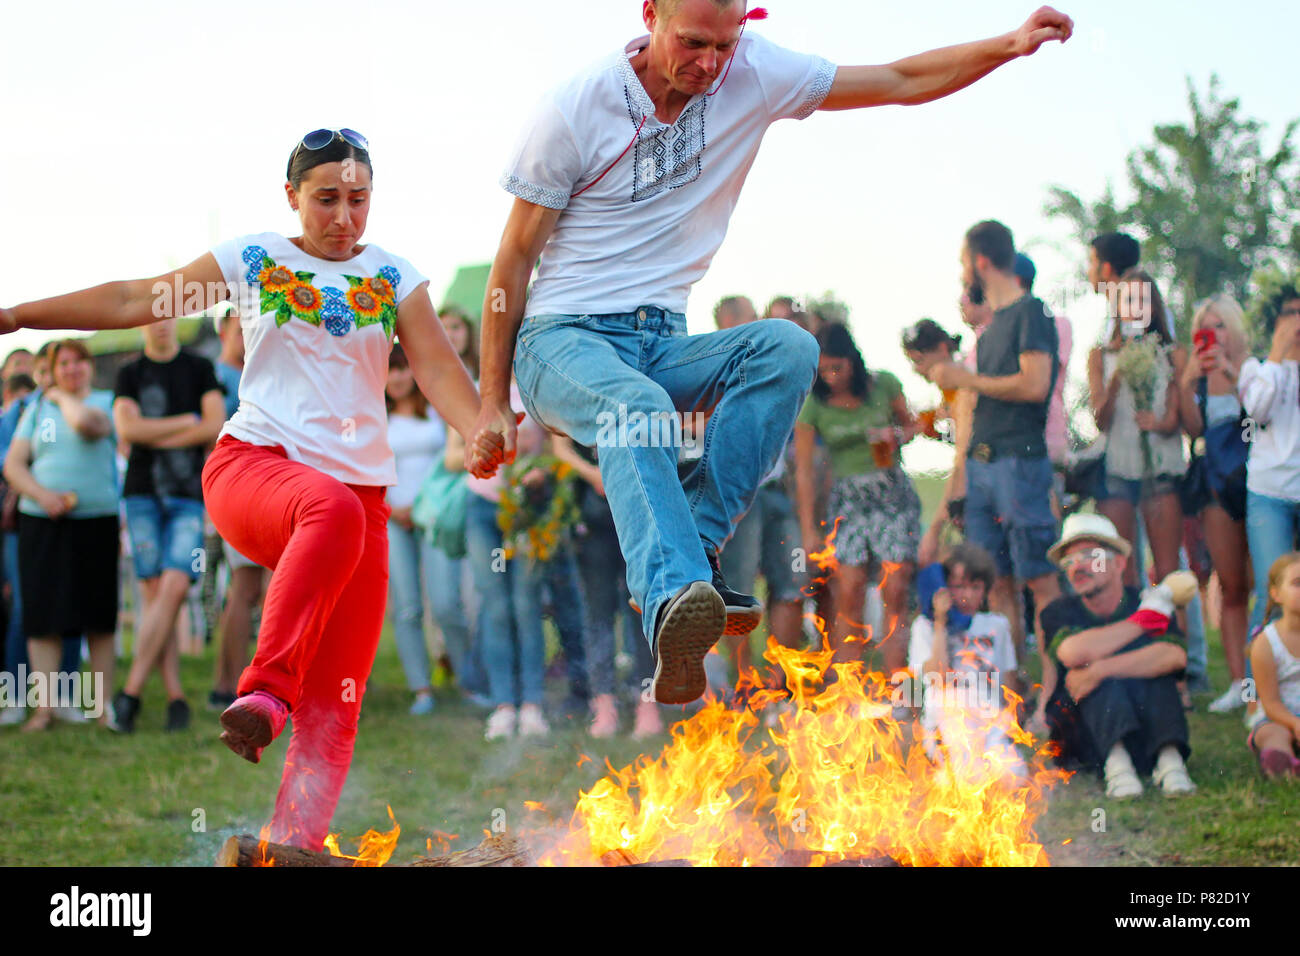 KYIV, UKRAINE - JULY 6, 2018: People jump over the flames of bonfire during the traditional Slavic celebration of Ivana Kupala holiday in Pirogovo ope - Stock Image